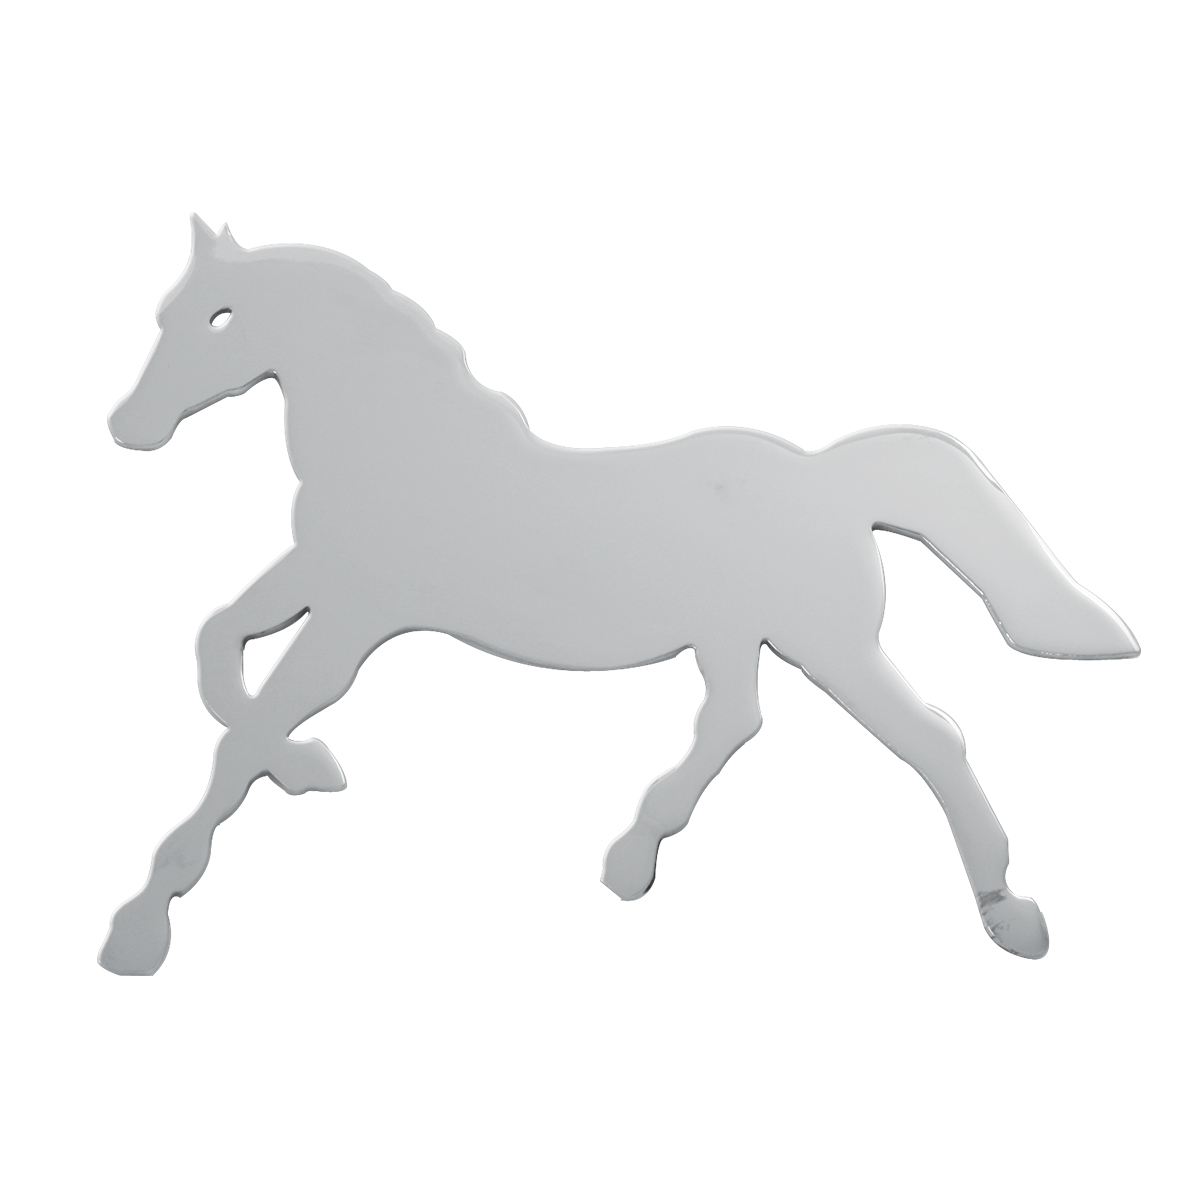 Small Horse Cut Out Facing Left – Studs on Back